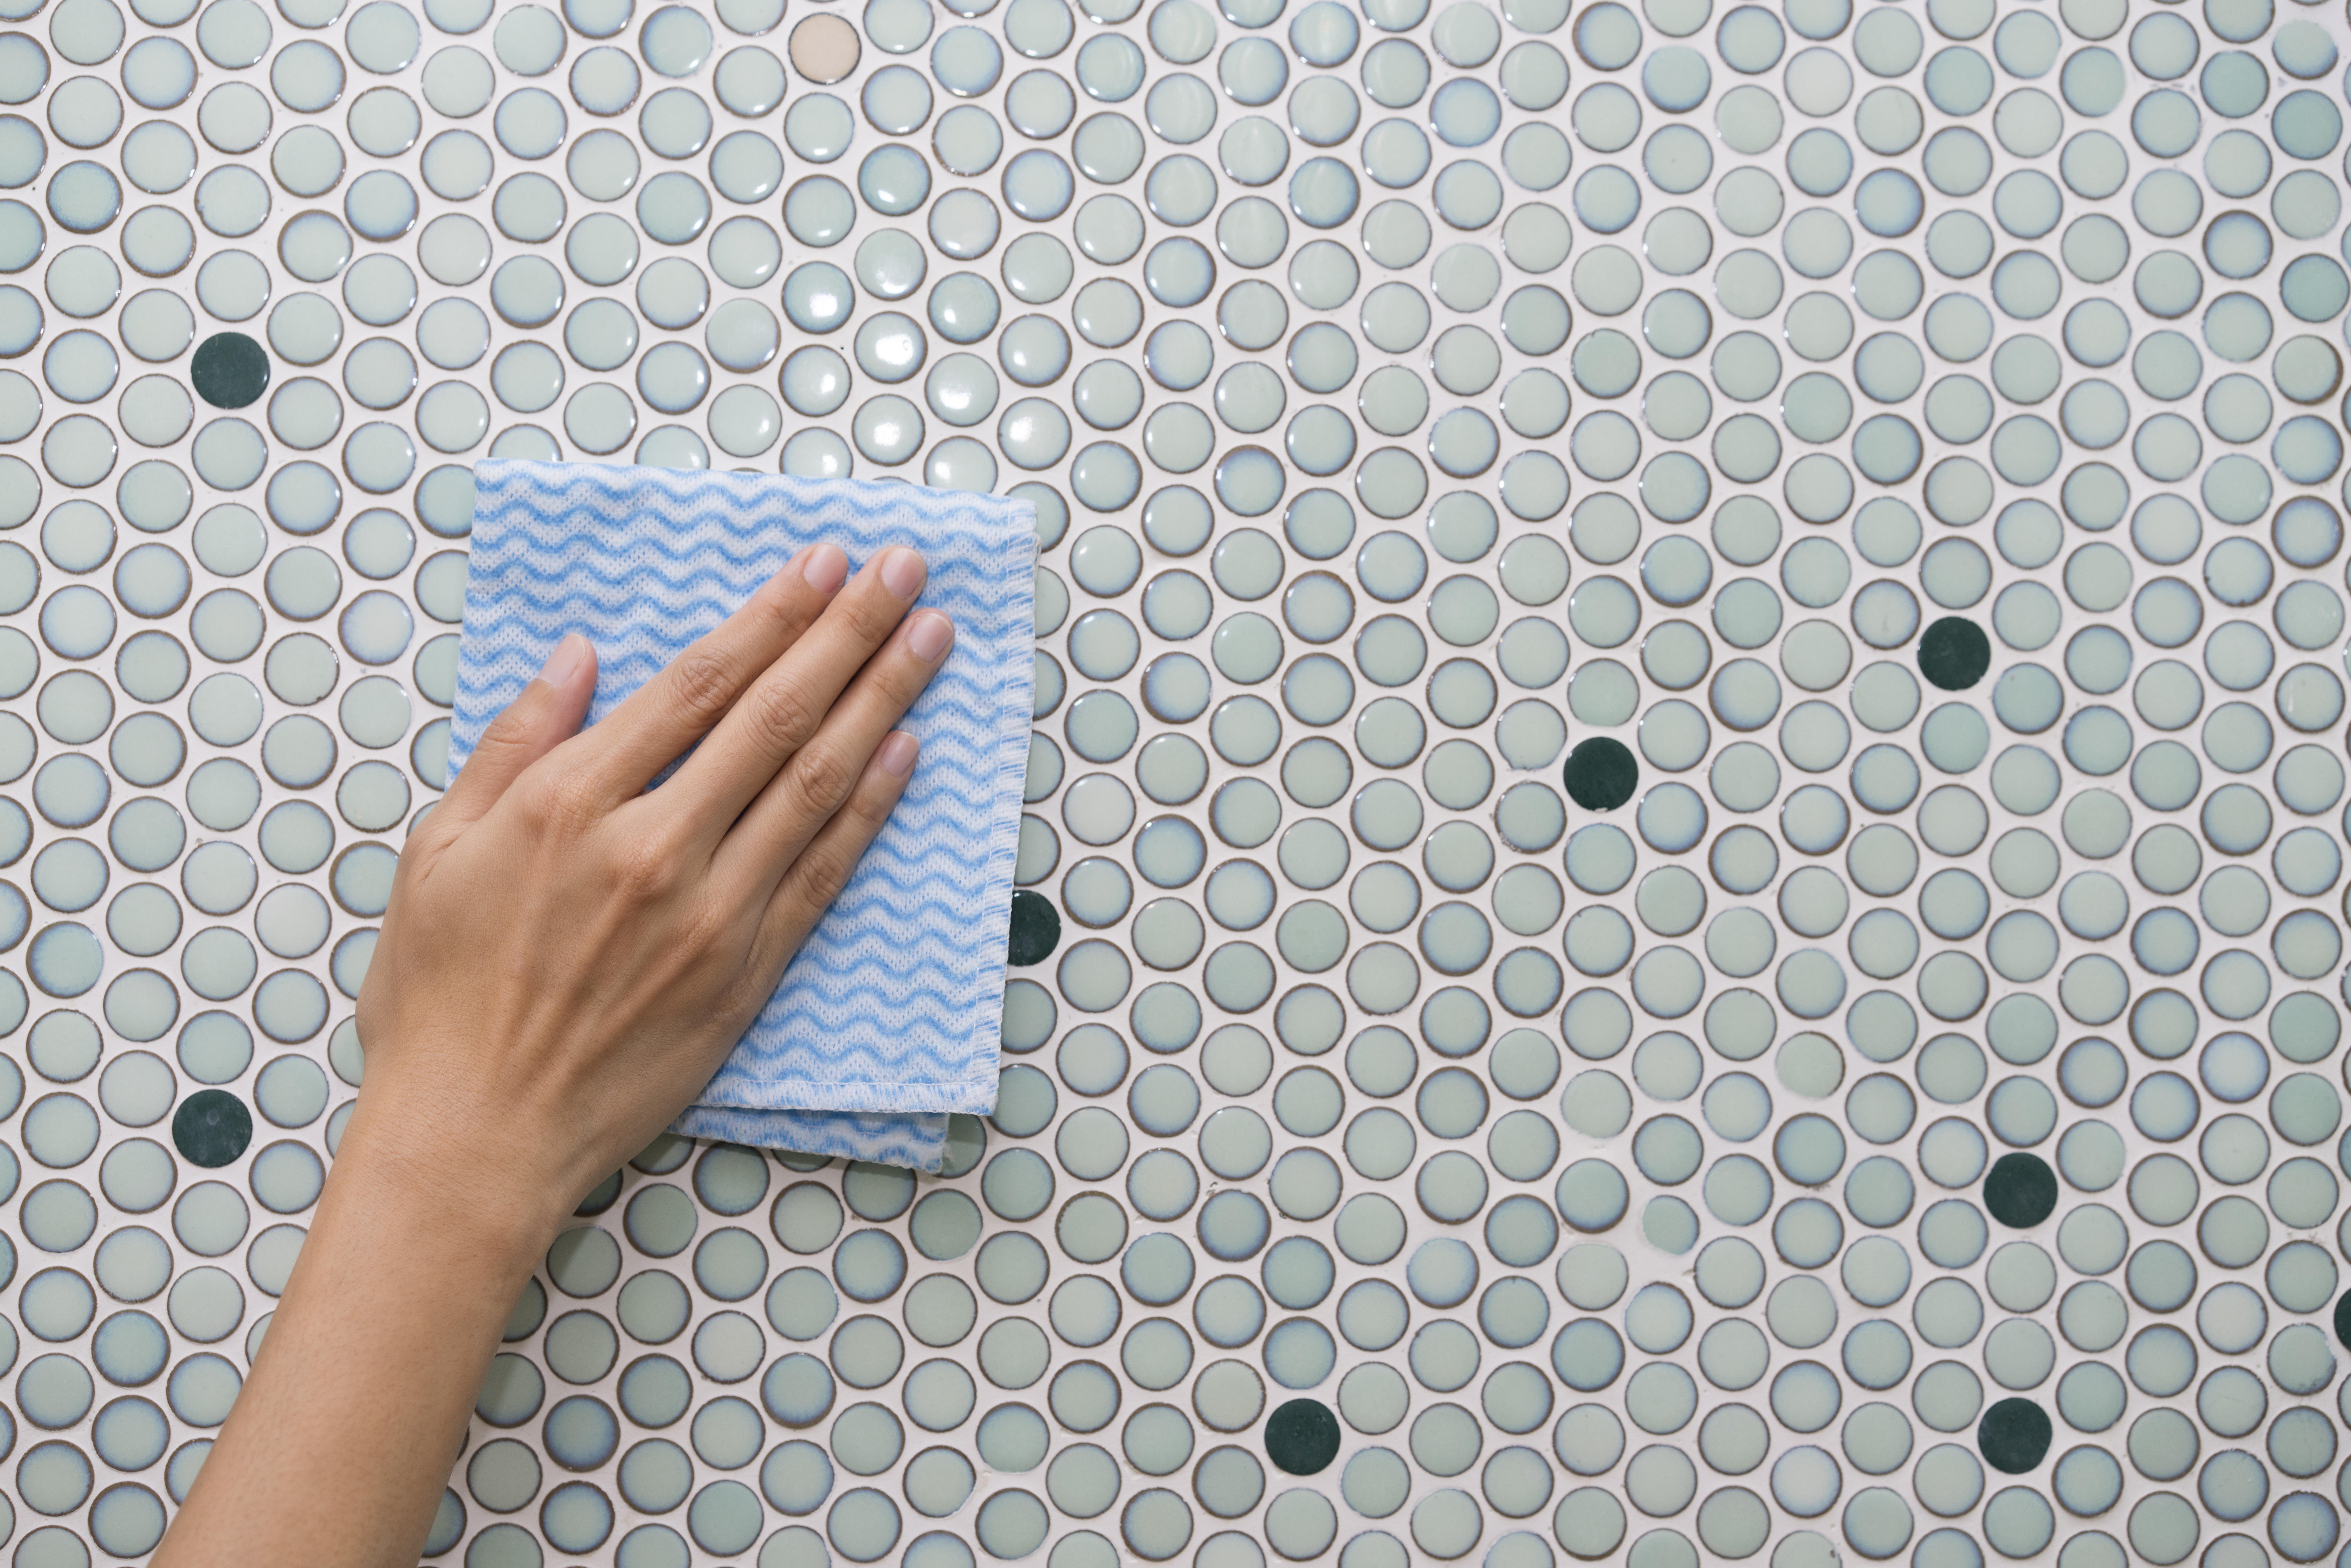 How to Clean & Restore Shine on Bathroom Tiles   Home Guides